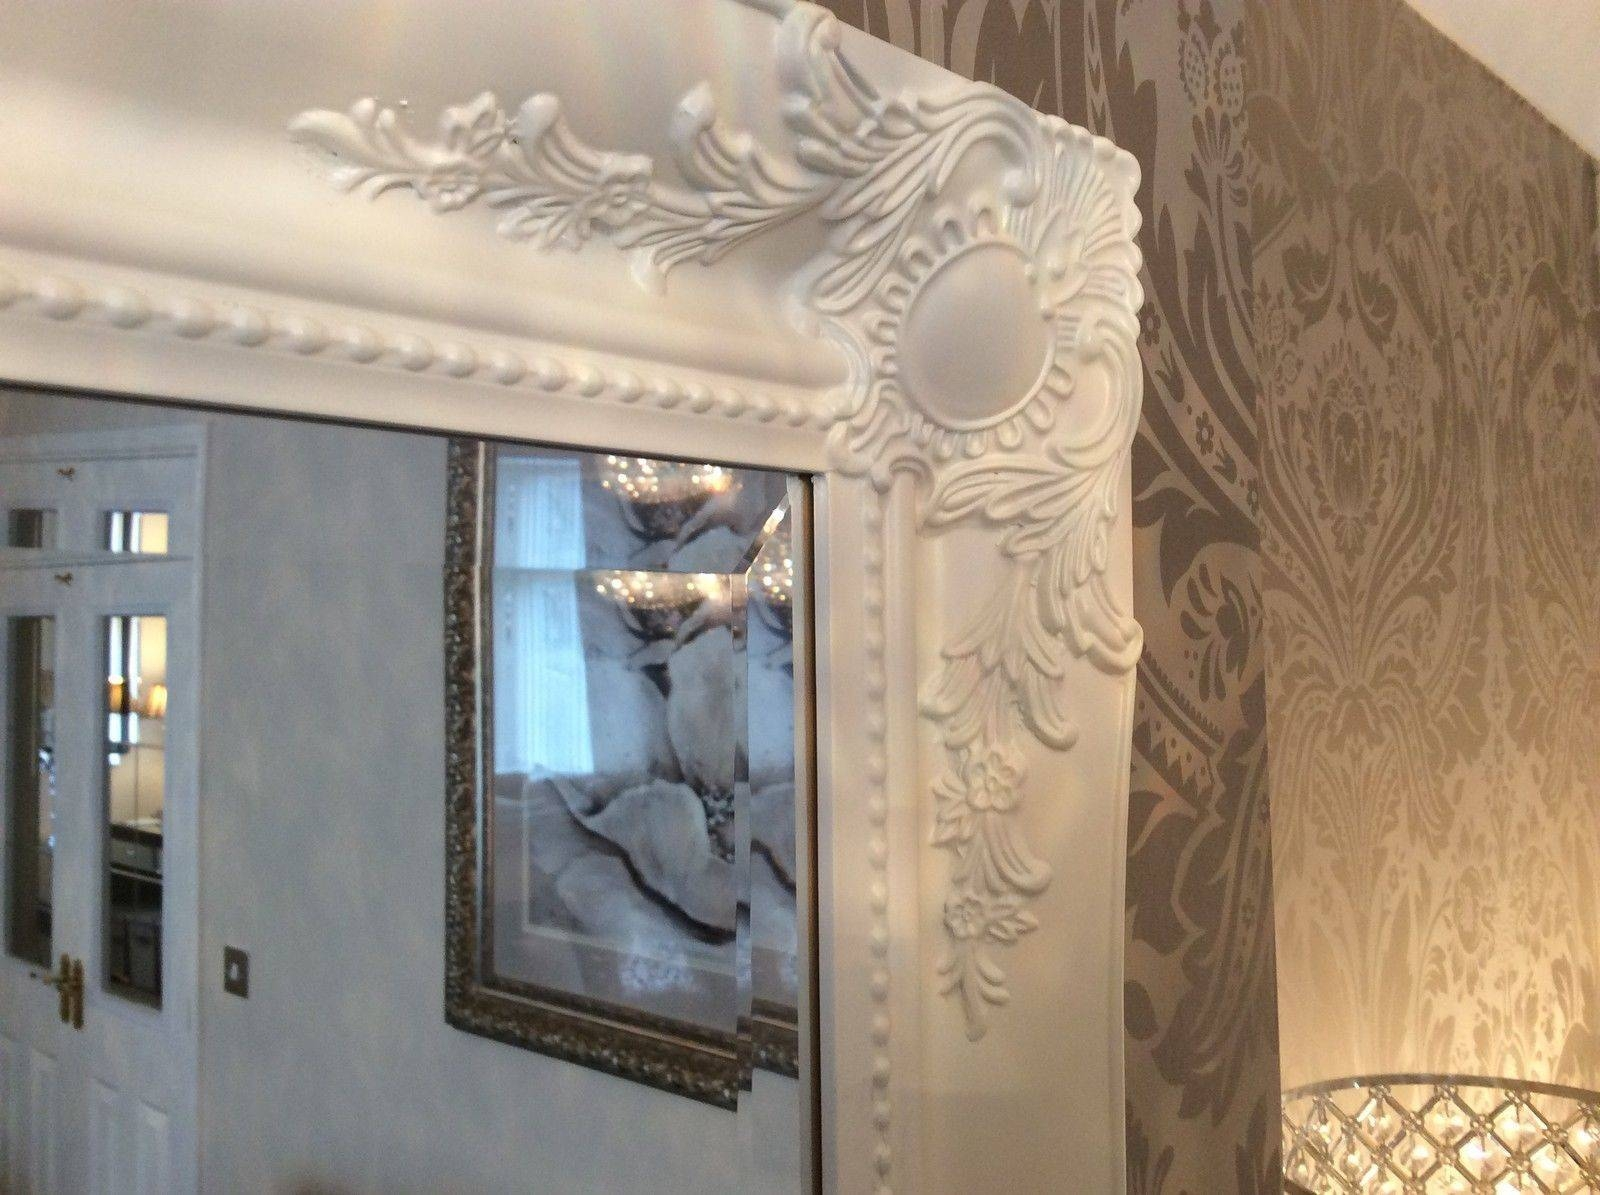 French White Shabby Chic Ornate Decorative Over Mantle Wall Mirror throughout White Shabby Chic Wall Mirrors (Image 8 of 25)